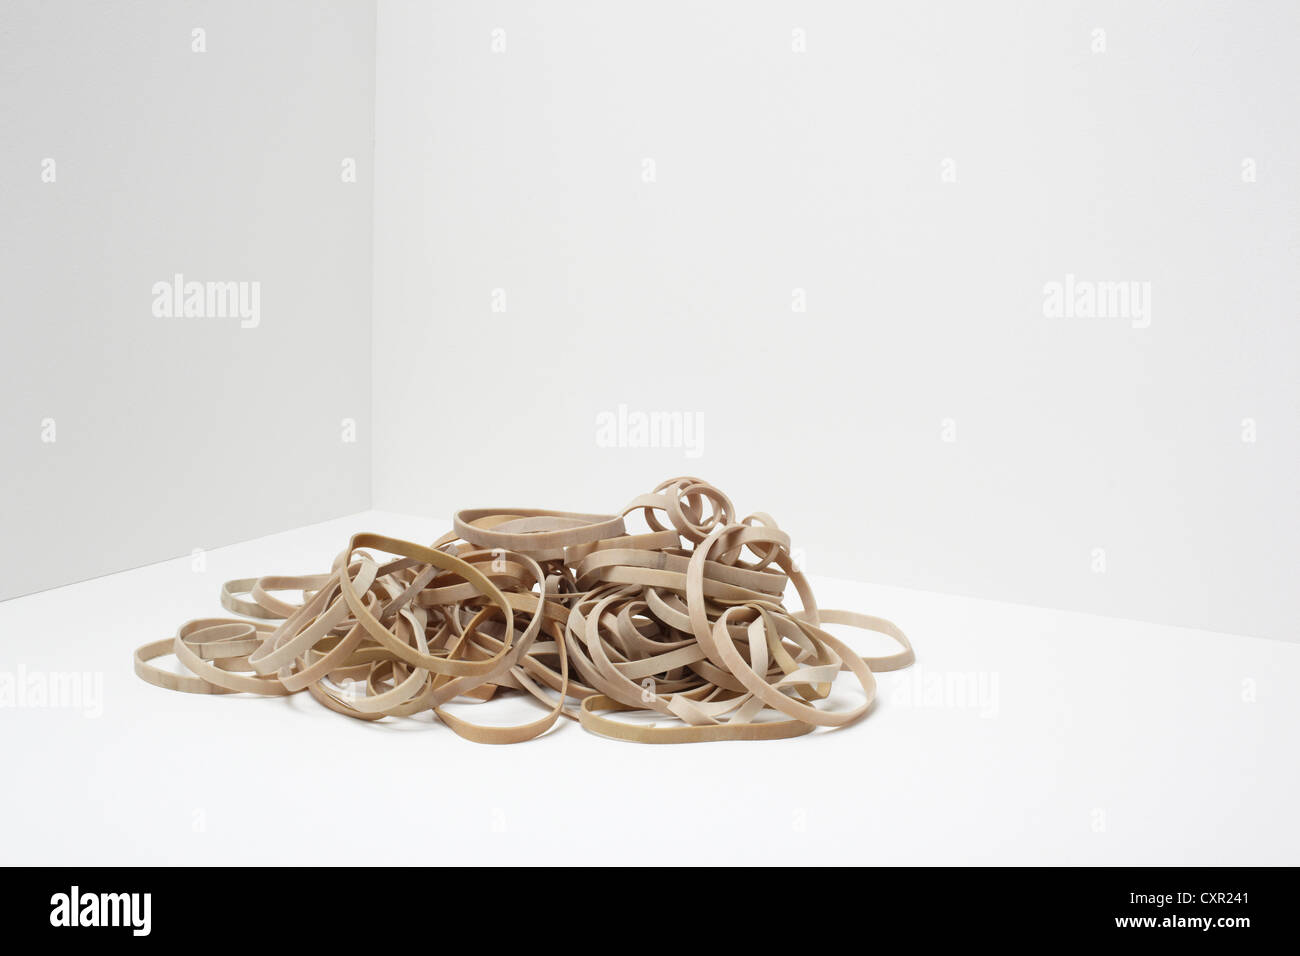 Stack of rubber bands - Stock Image